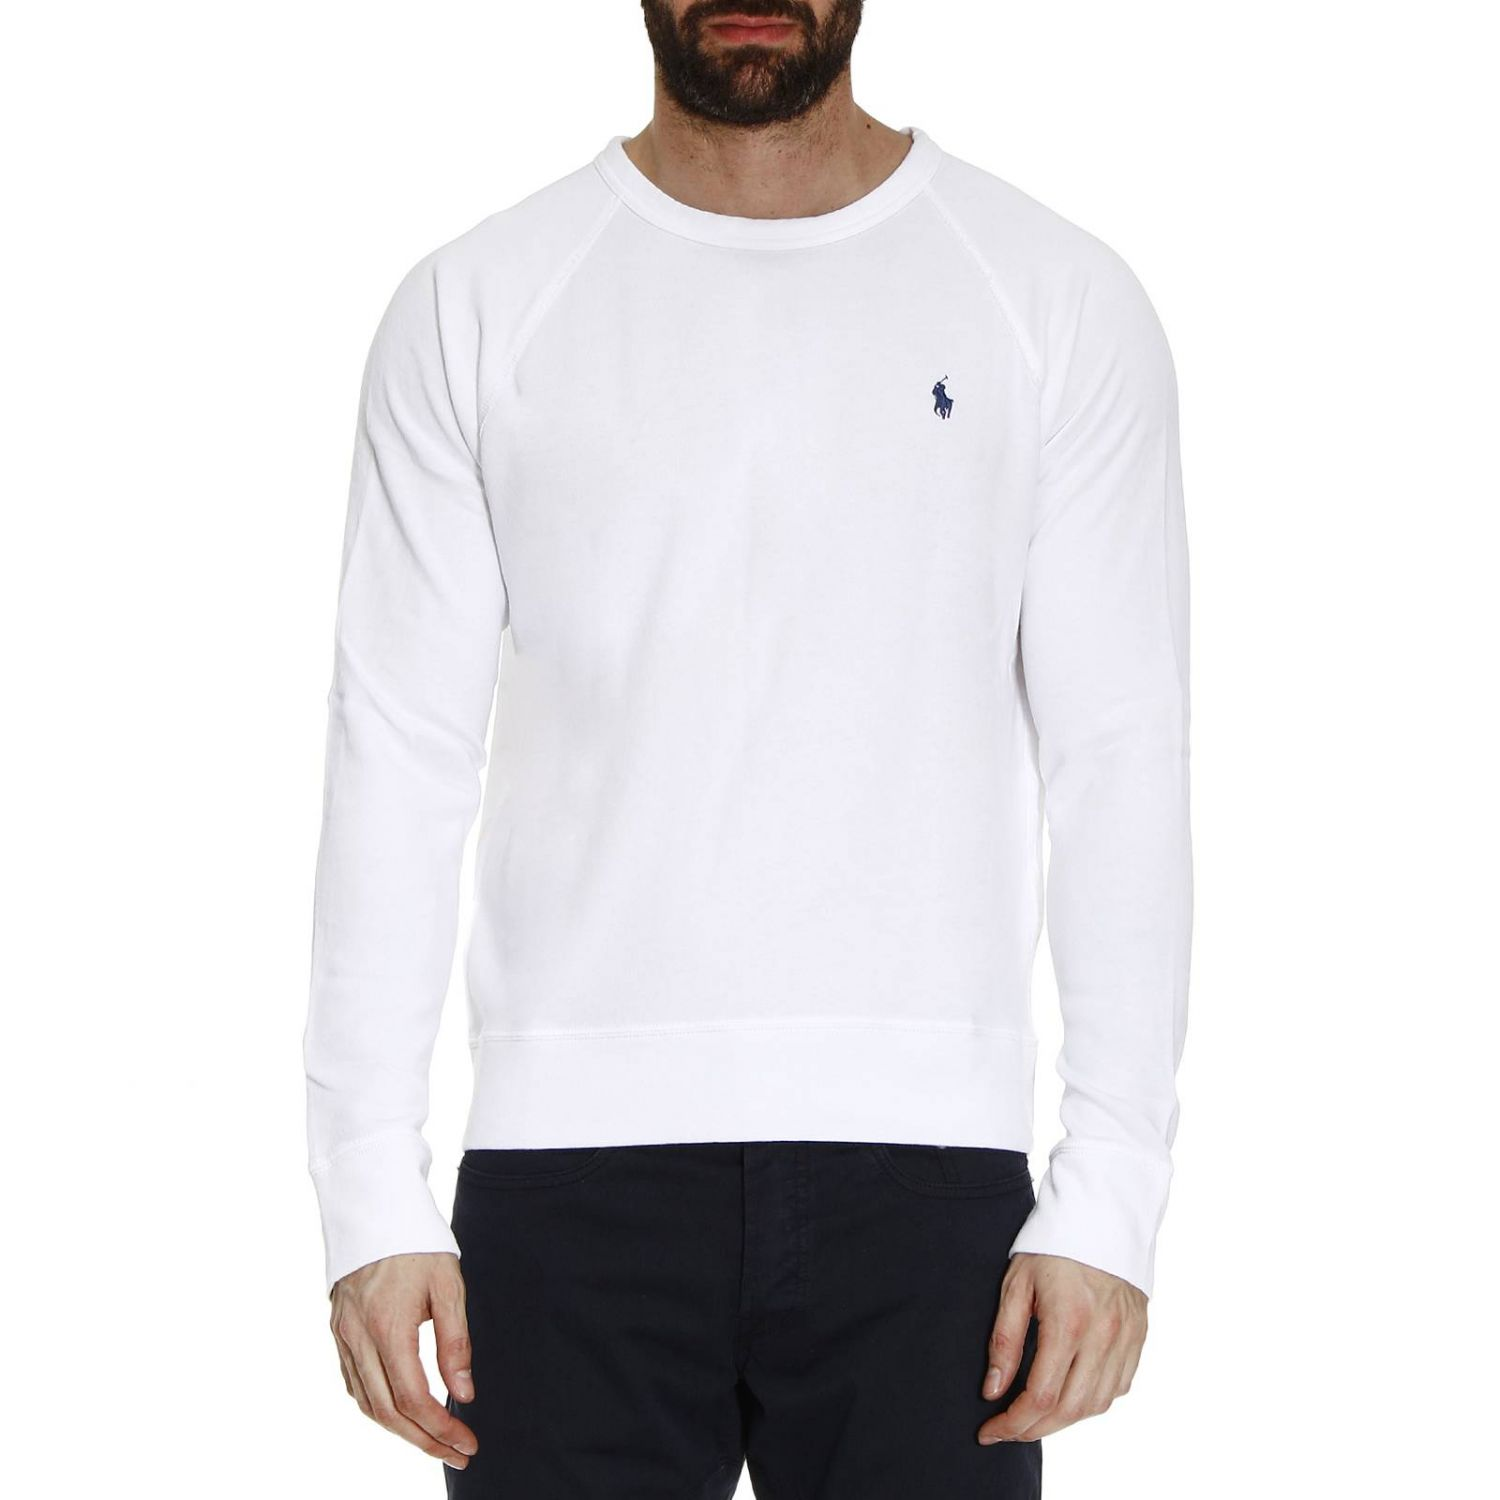 pulle homme blanc ralph